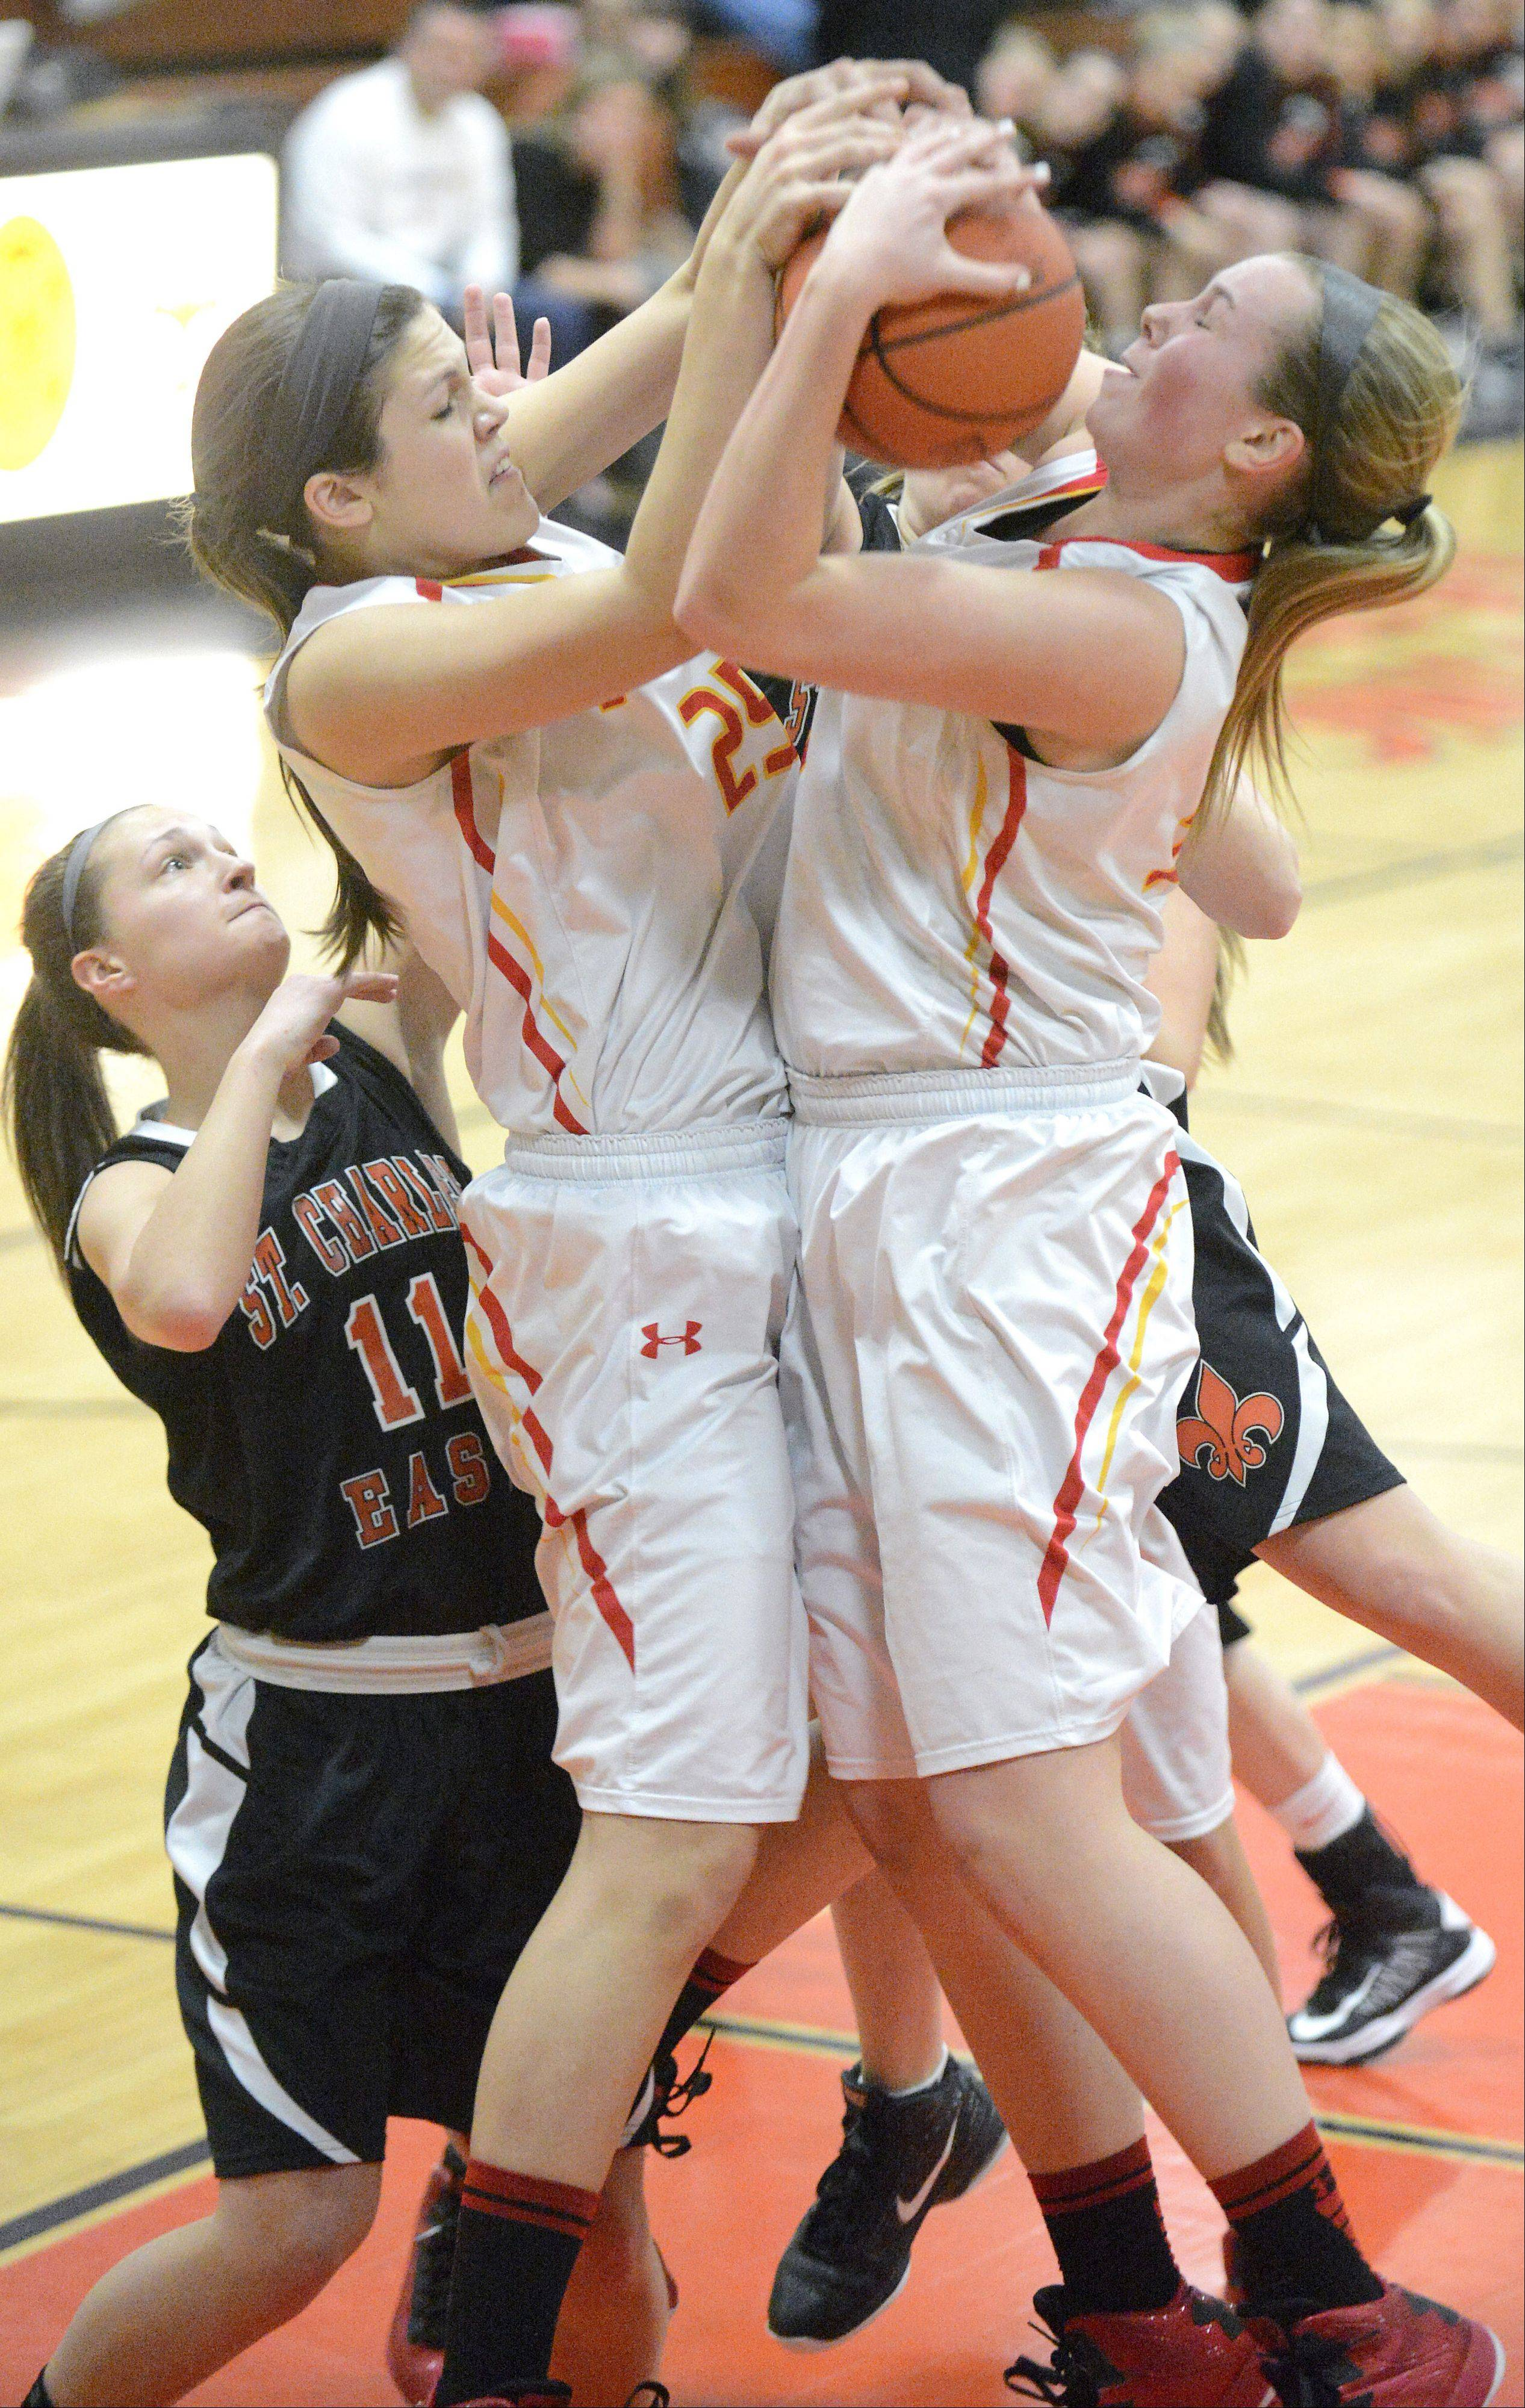 Laura Stoecker/lstoecker@dailyherald.com Batavia's Hannah Frazier and Erin Bayram both grab for a rebound in the third quarter of the 4A regional vs. St. Charles East on Tuesday, February 12.